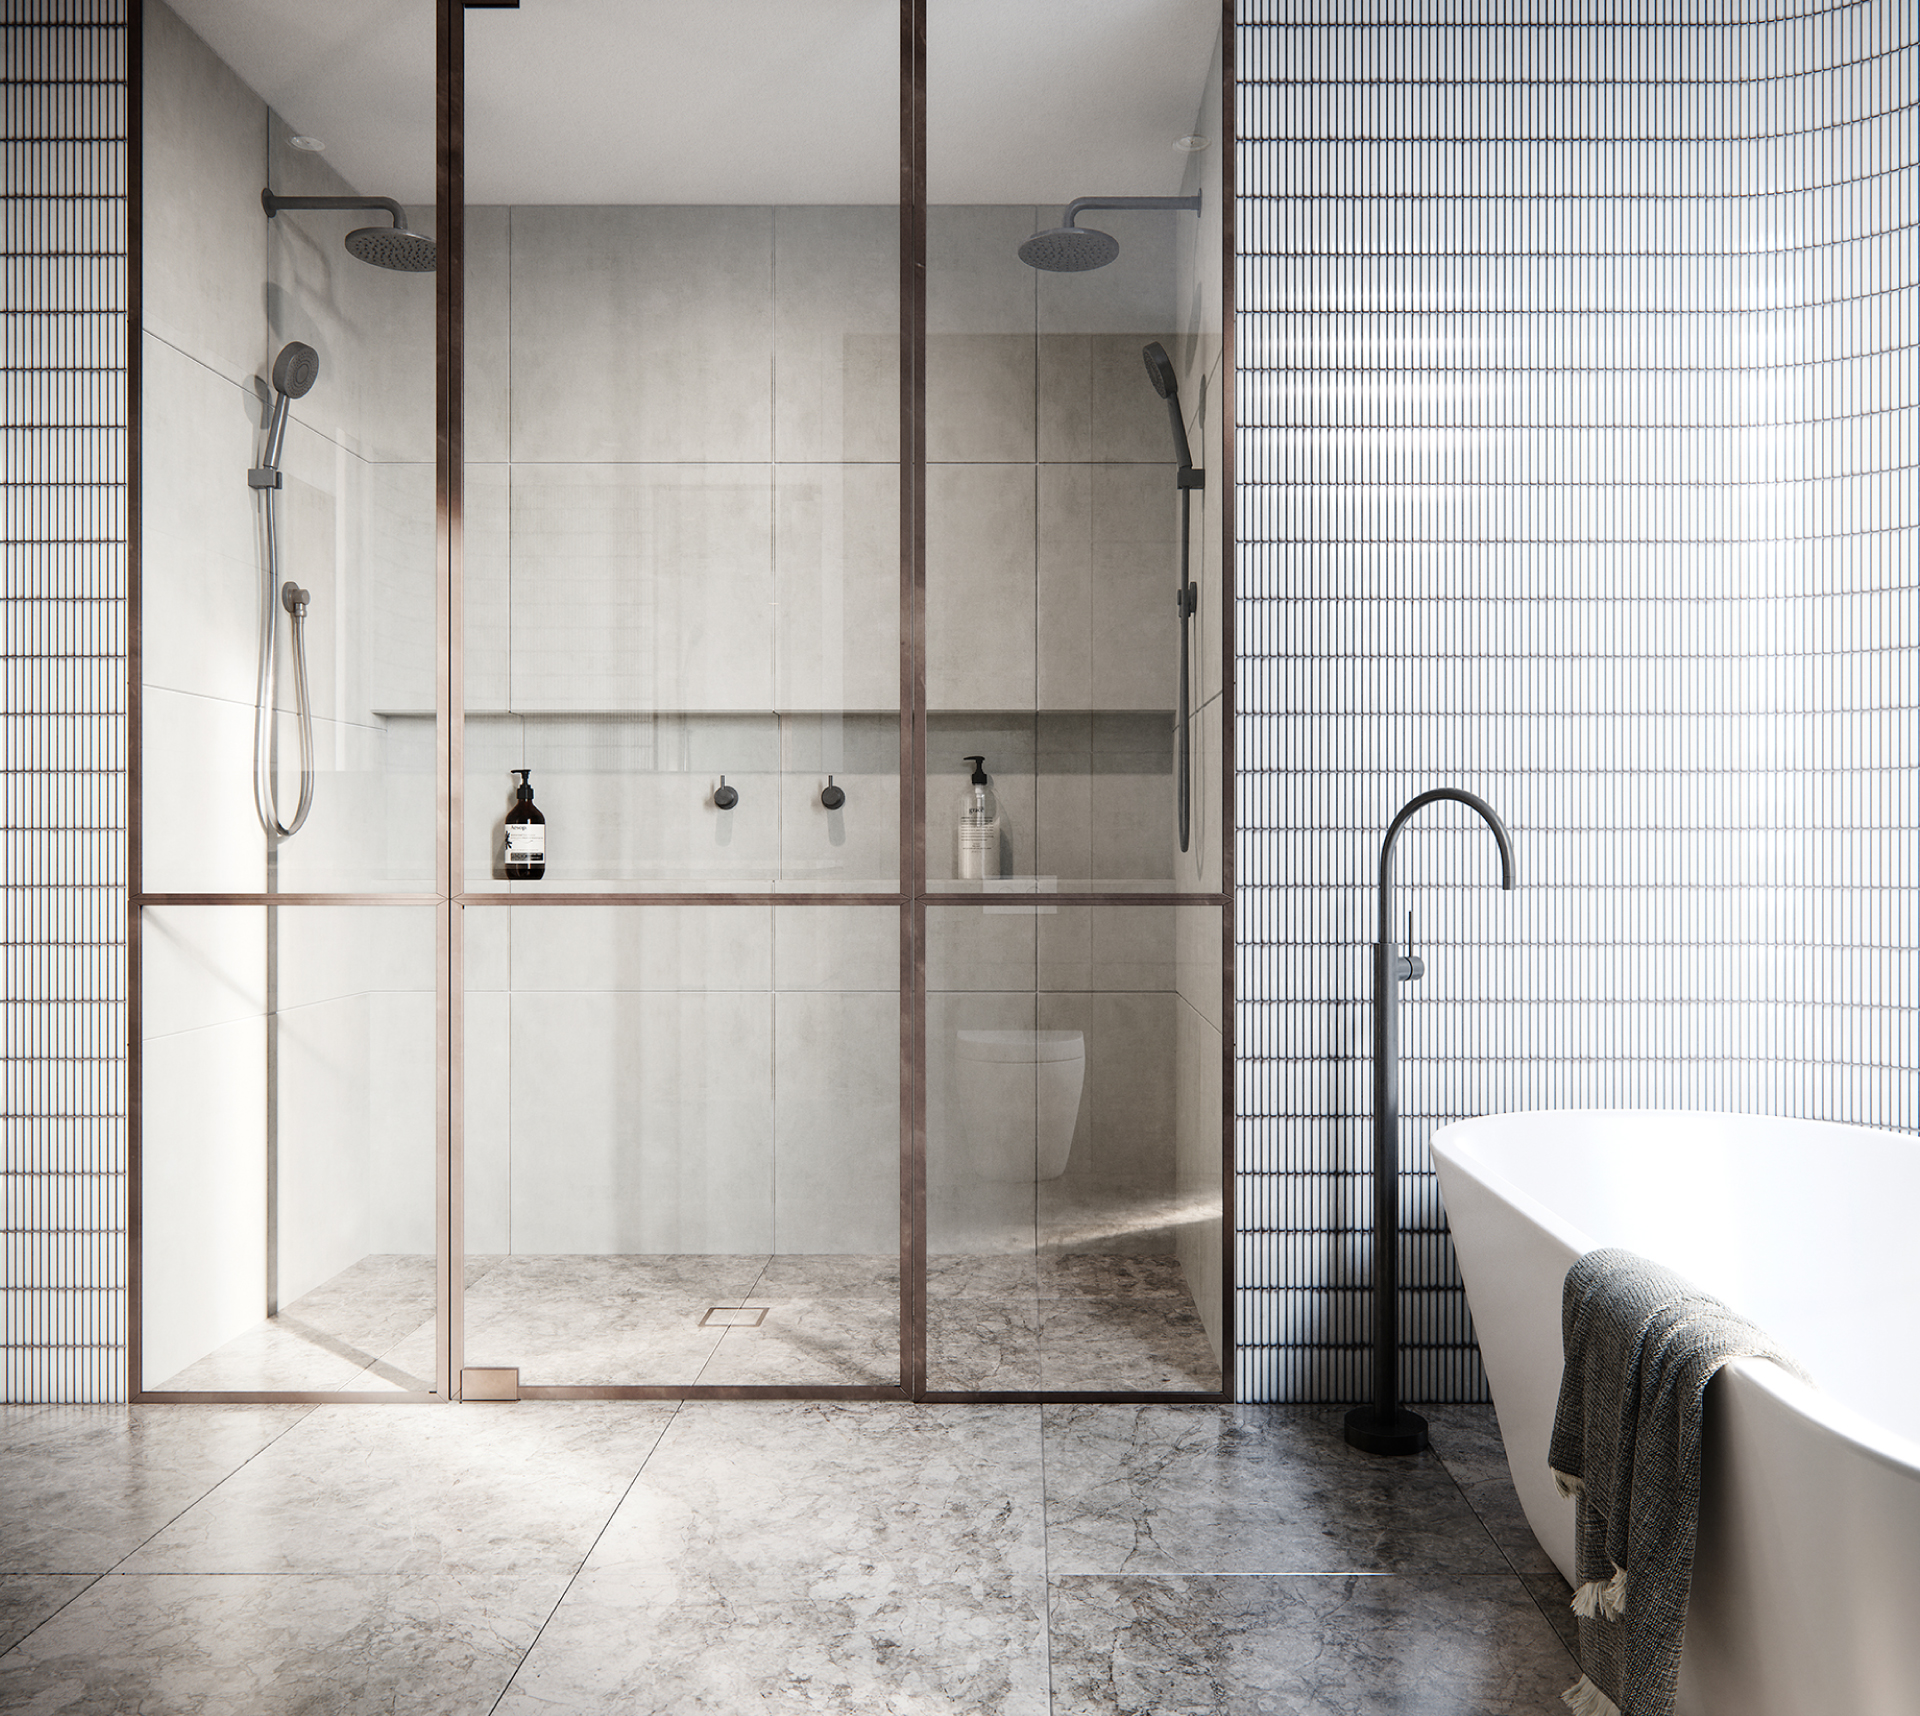 Cera Stribley Architecture Interior Design Marmont interior bathroom